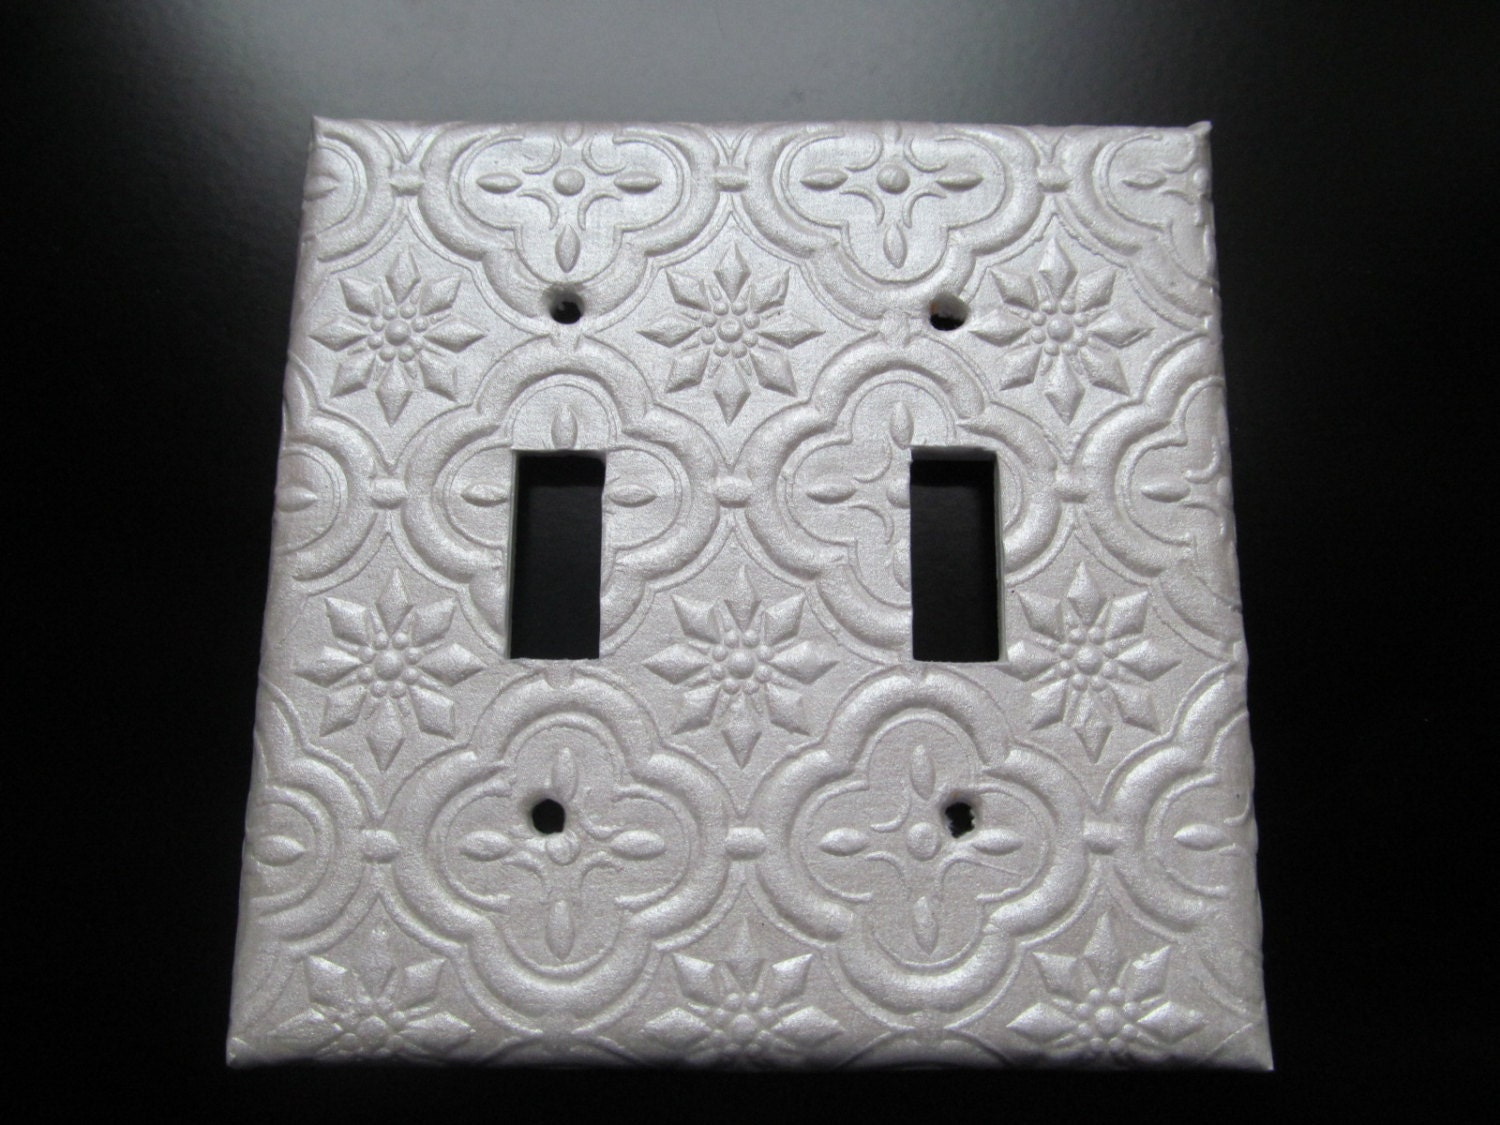 Handmade decorative light switch covers plates textured for Unique light switch plates